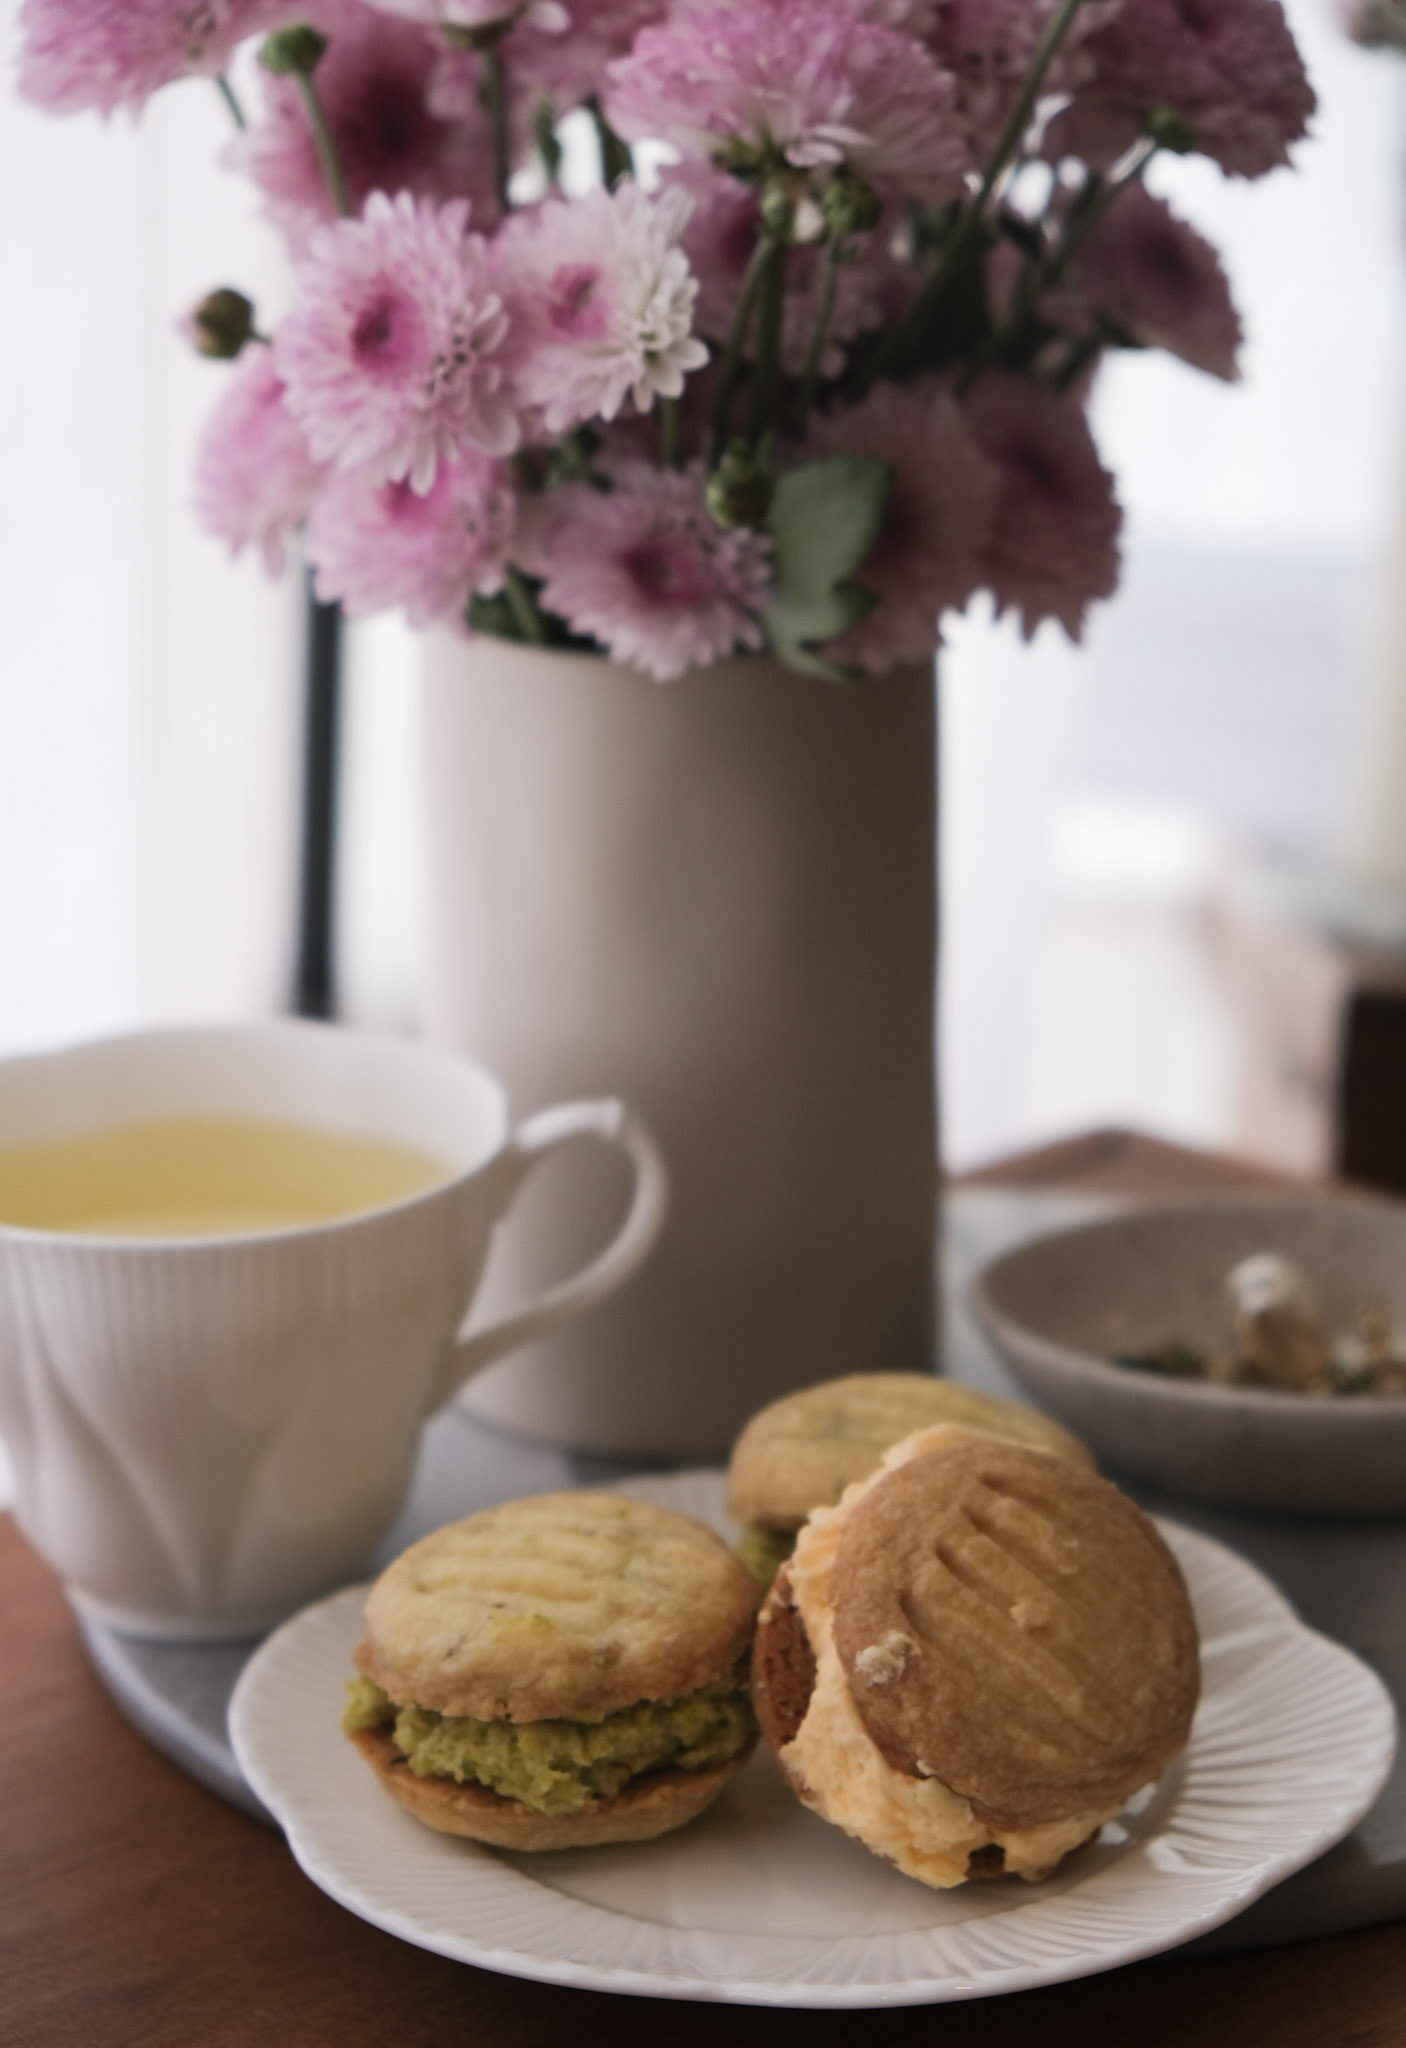 Melting moments, a vase of pink flowers and a tea cup on a coffee table, minimalist decor inspiration, floral arrangements, baked goods